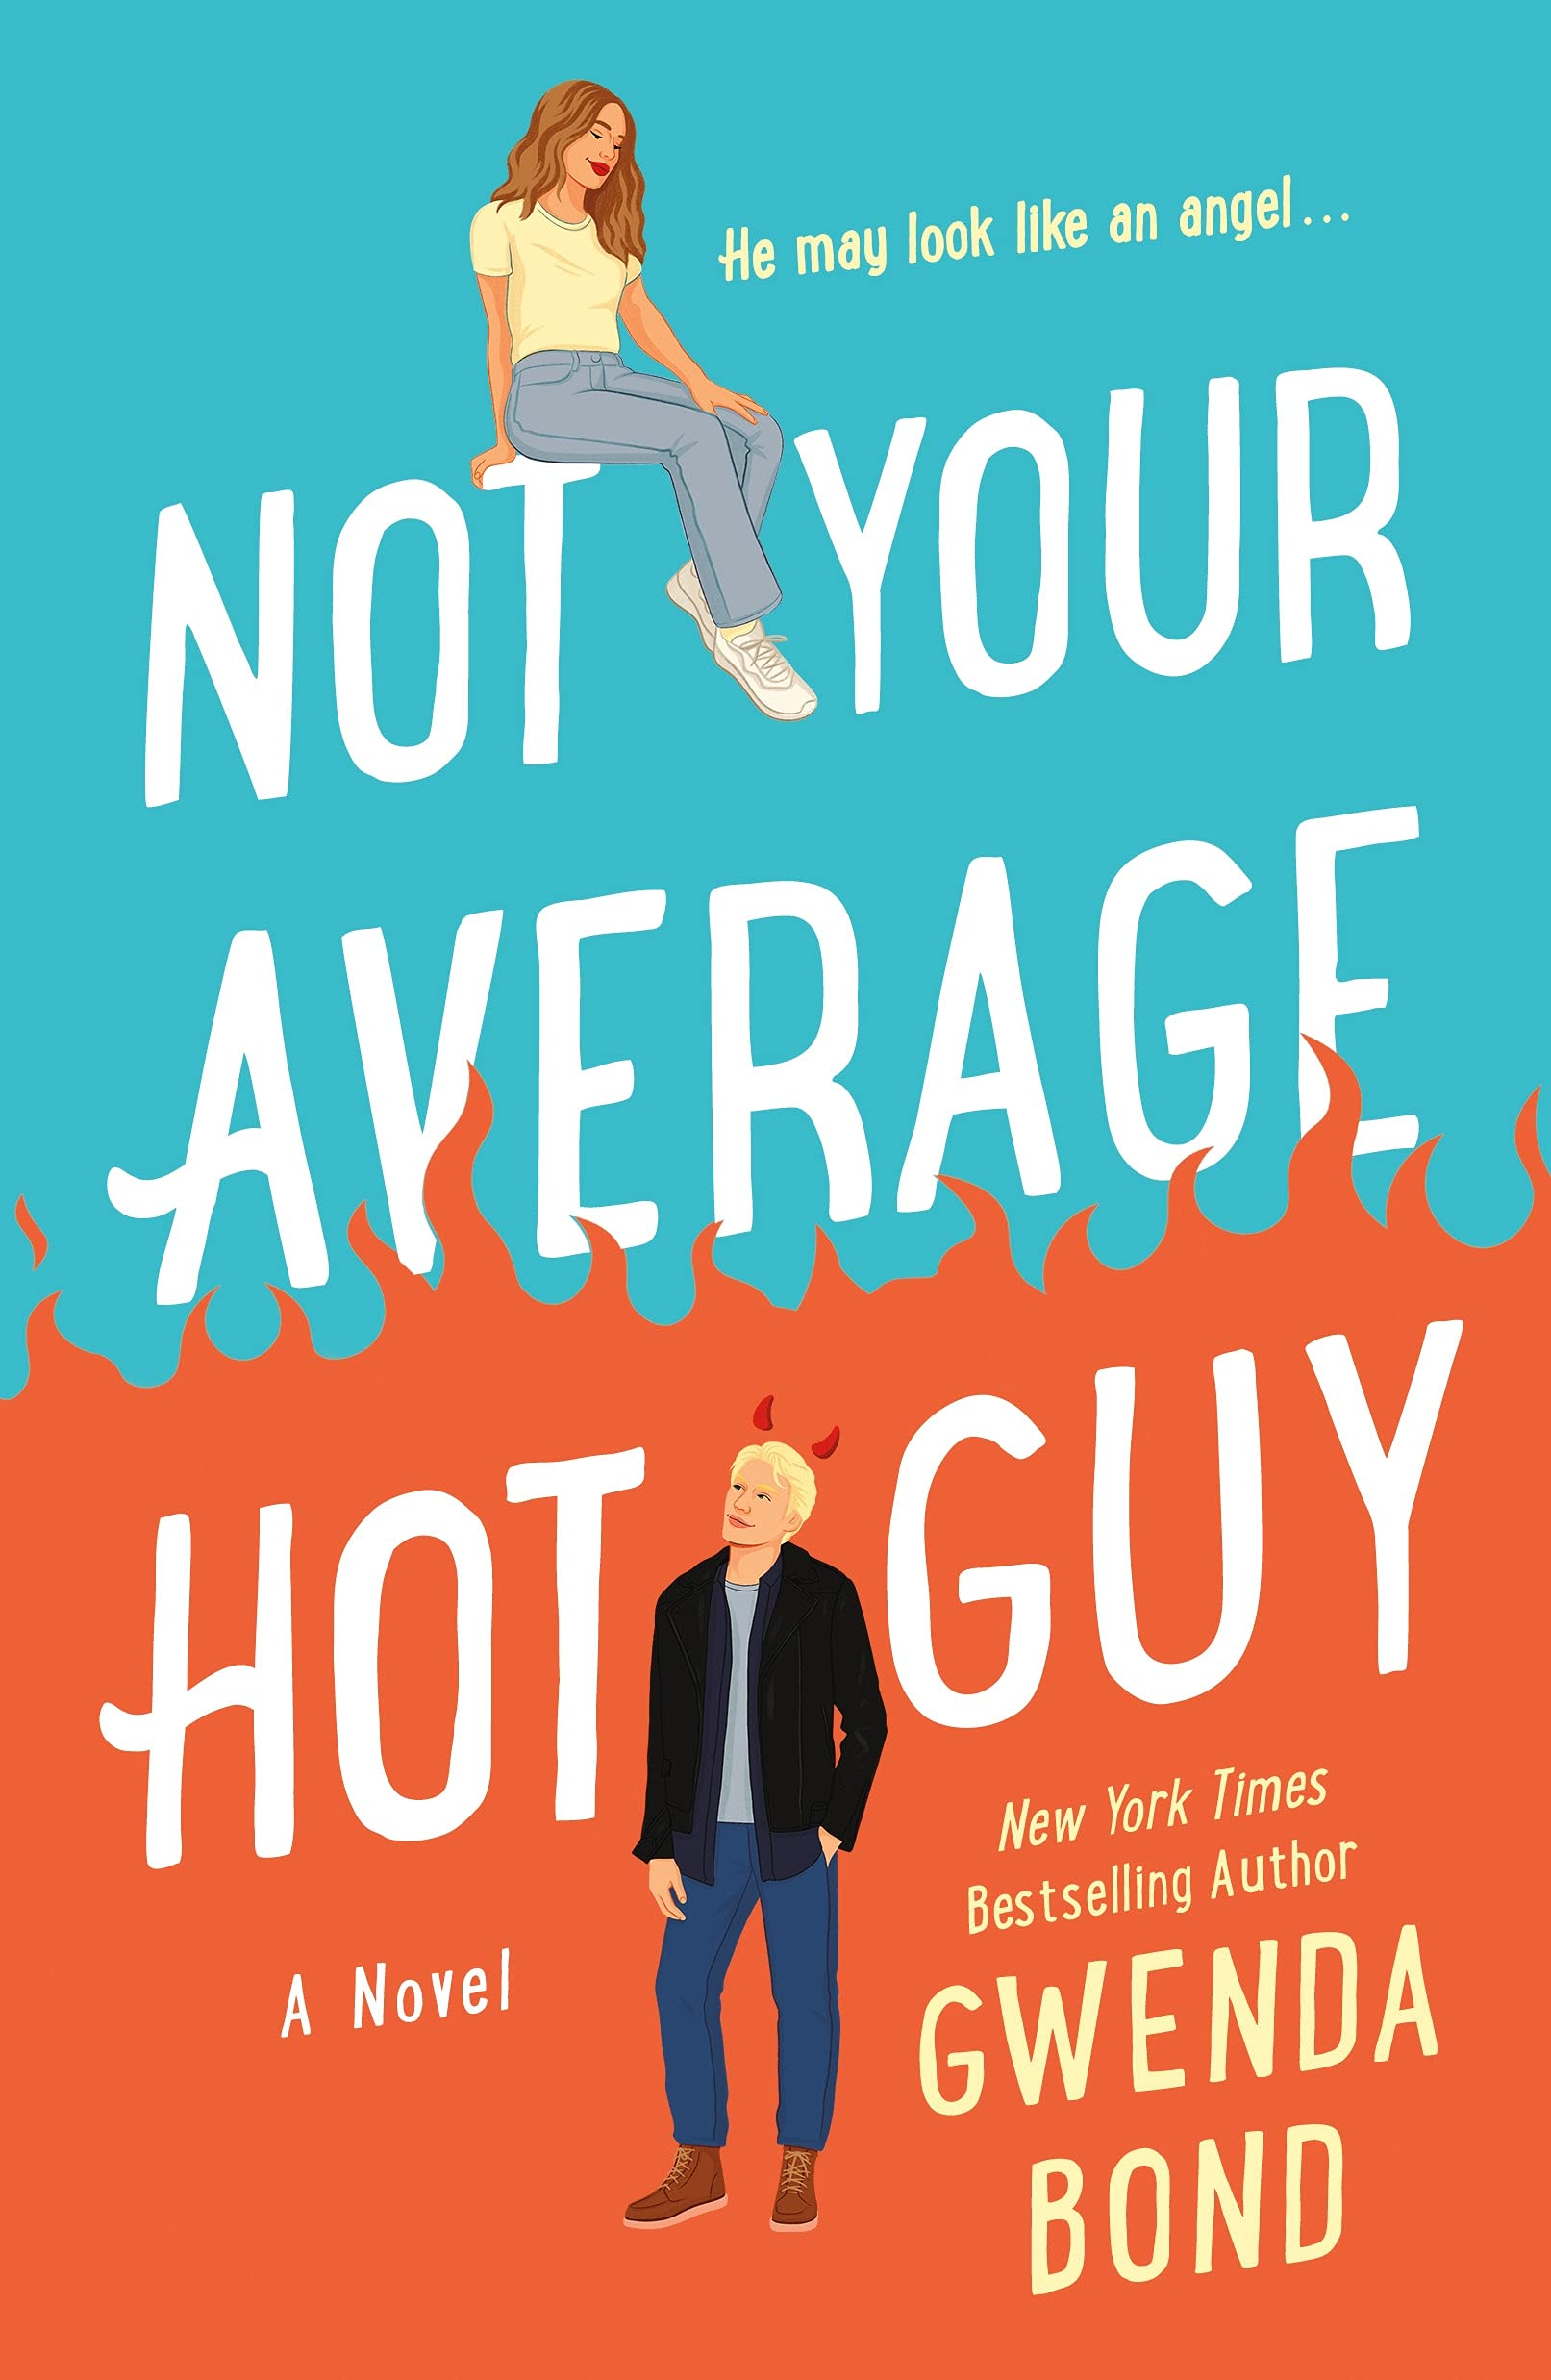 Gwenda Bond: Five Things I Learned Writing Not Your Average Hot Guy